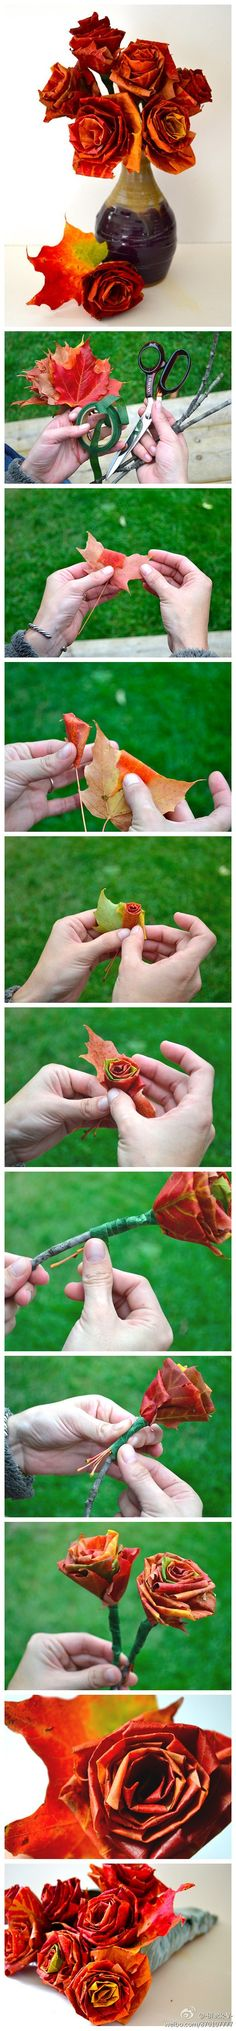 Another DIY flower tutorial but this time with autumn leaves. Cute Crafts, Crafts To Do, Fall Crafts, Holiday Crafts, Arts And Crafts, Diy Crafts, Paper Crafts, Nature Crafts, Diy Projects For Fall